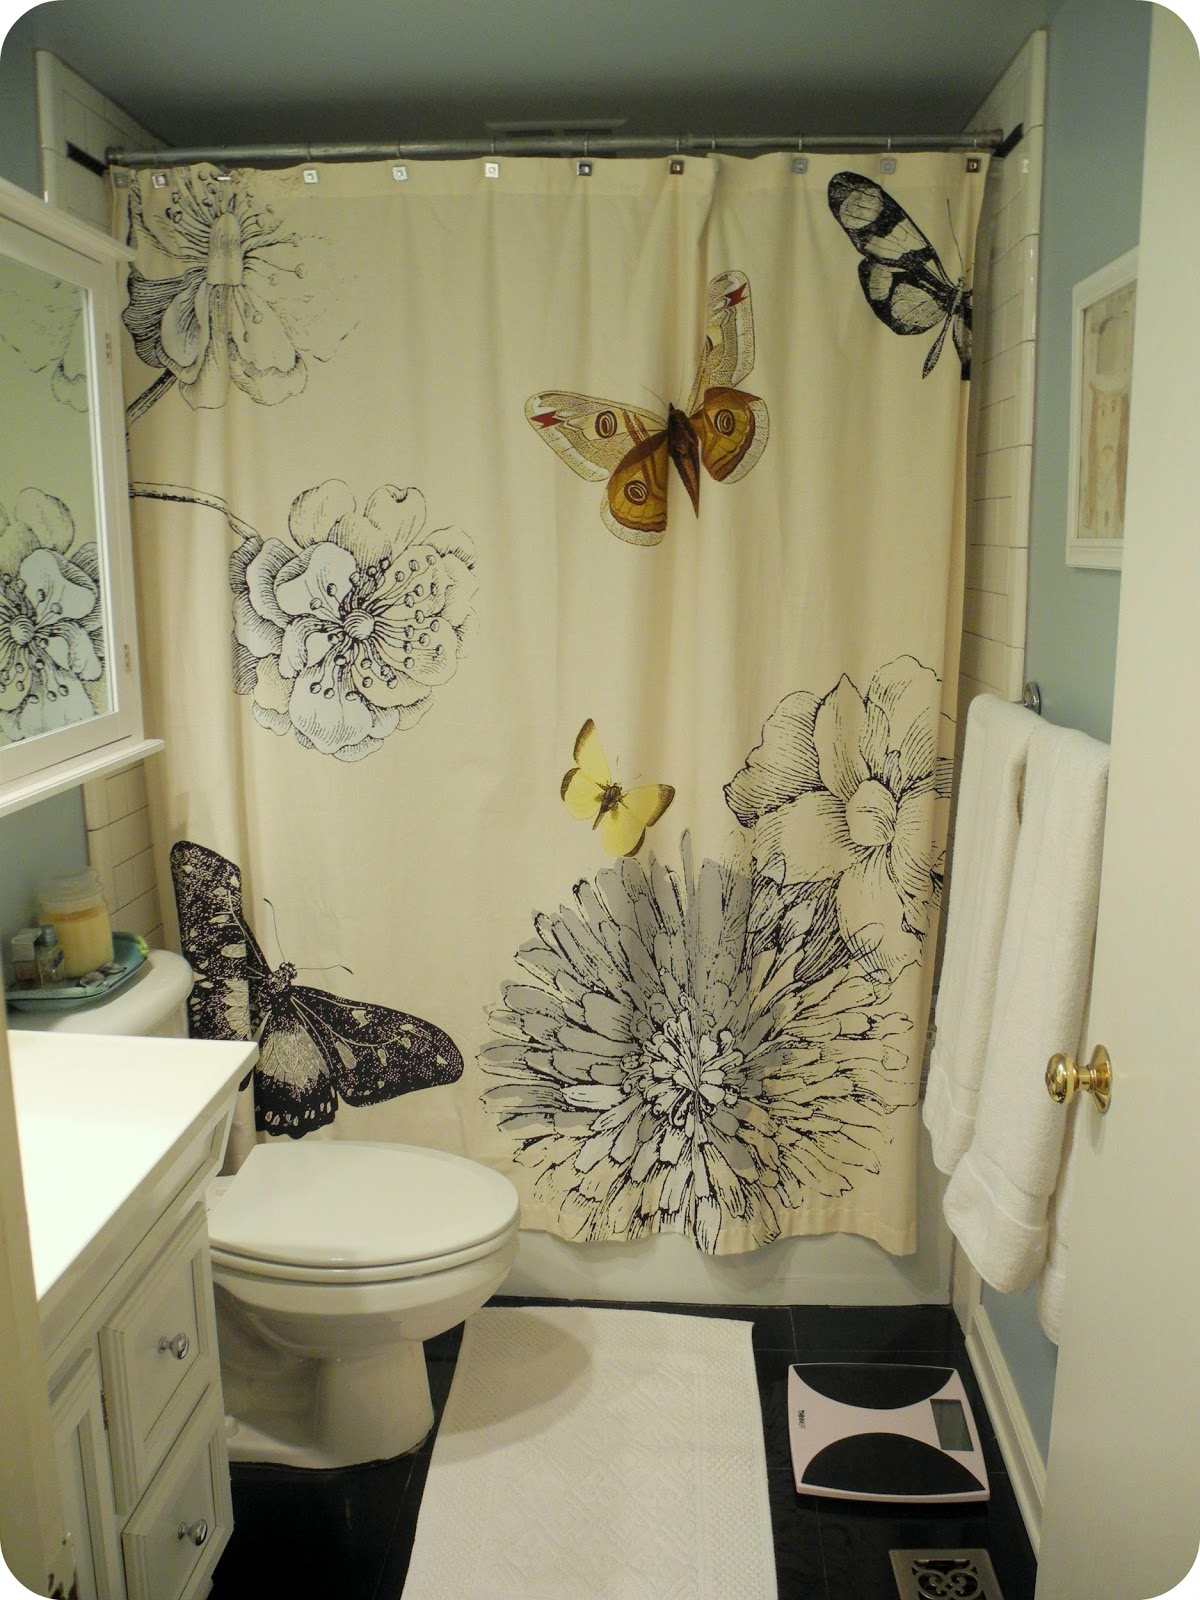 Simple I Live Here Black White and Blue Bathroom with Butterflies And Gary Oldman